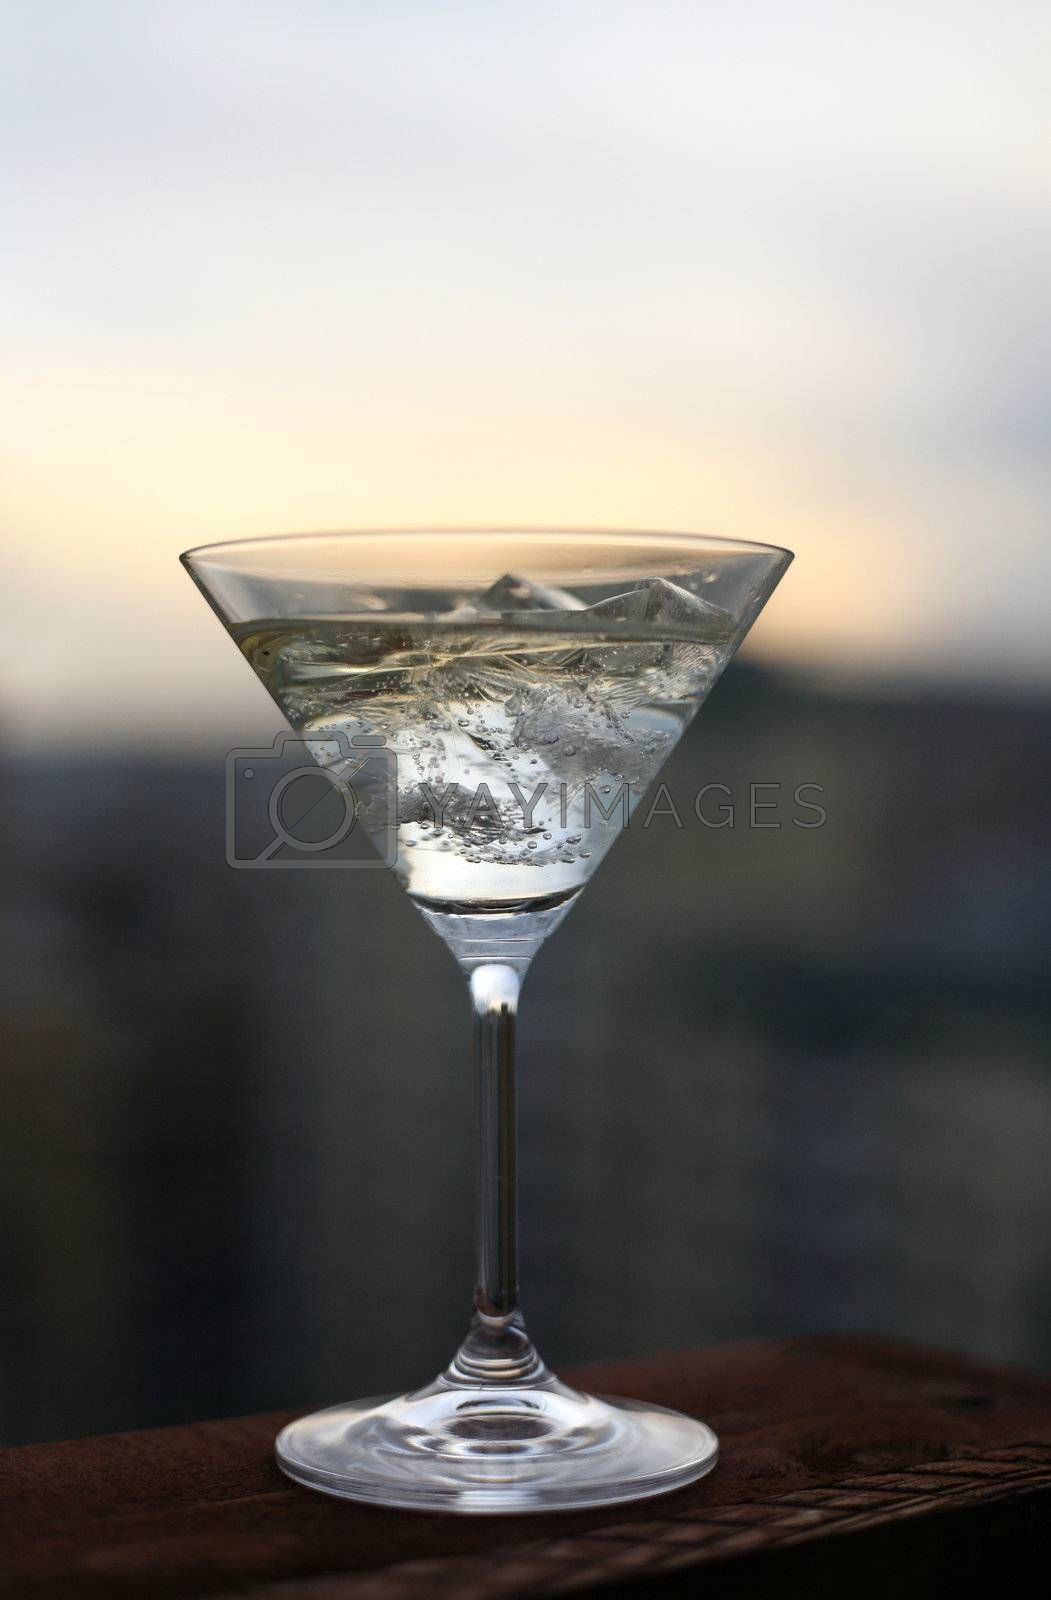 The image of a glass filled with a spirits drink and ice